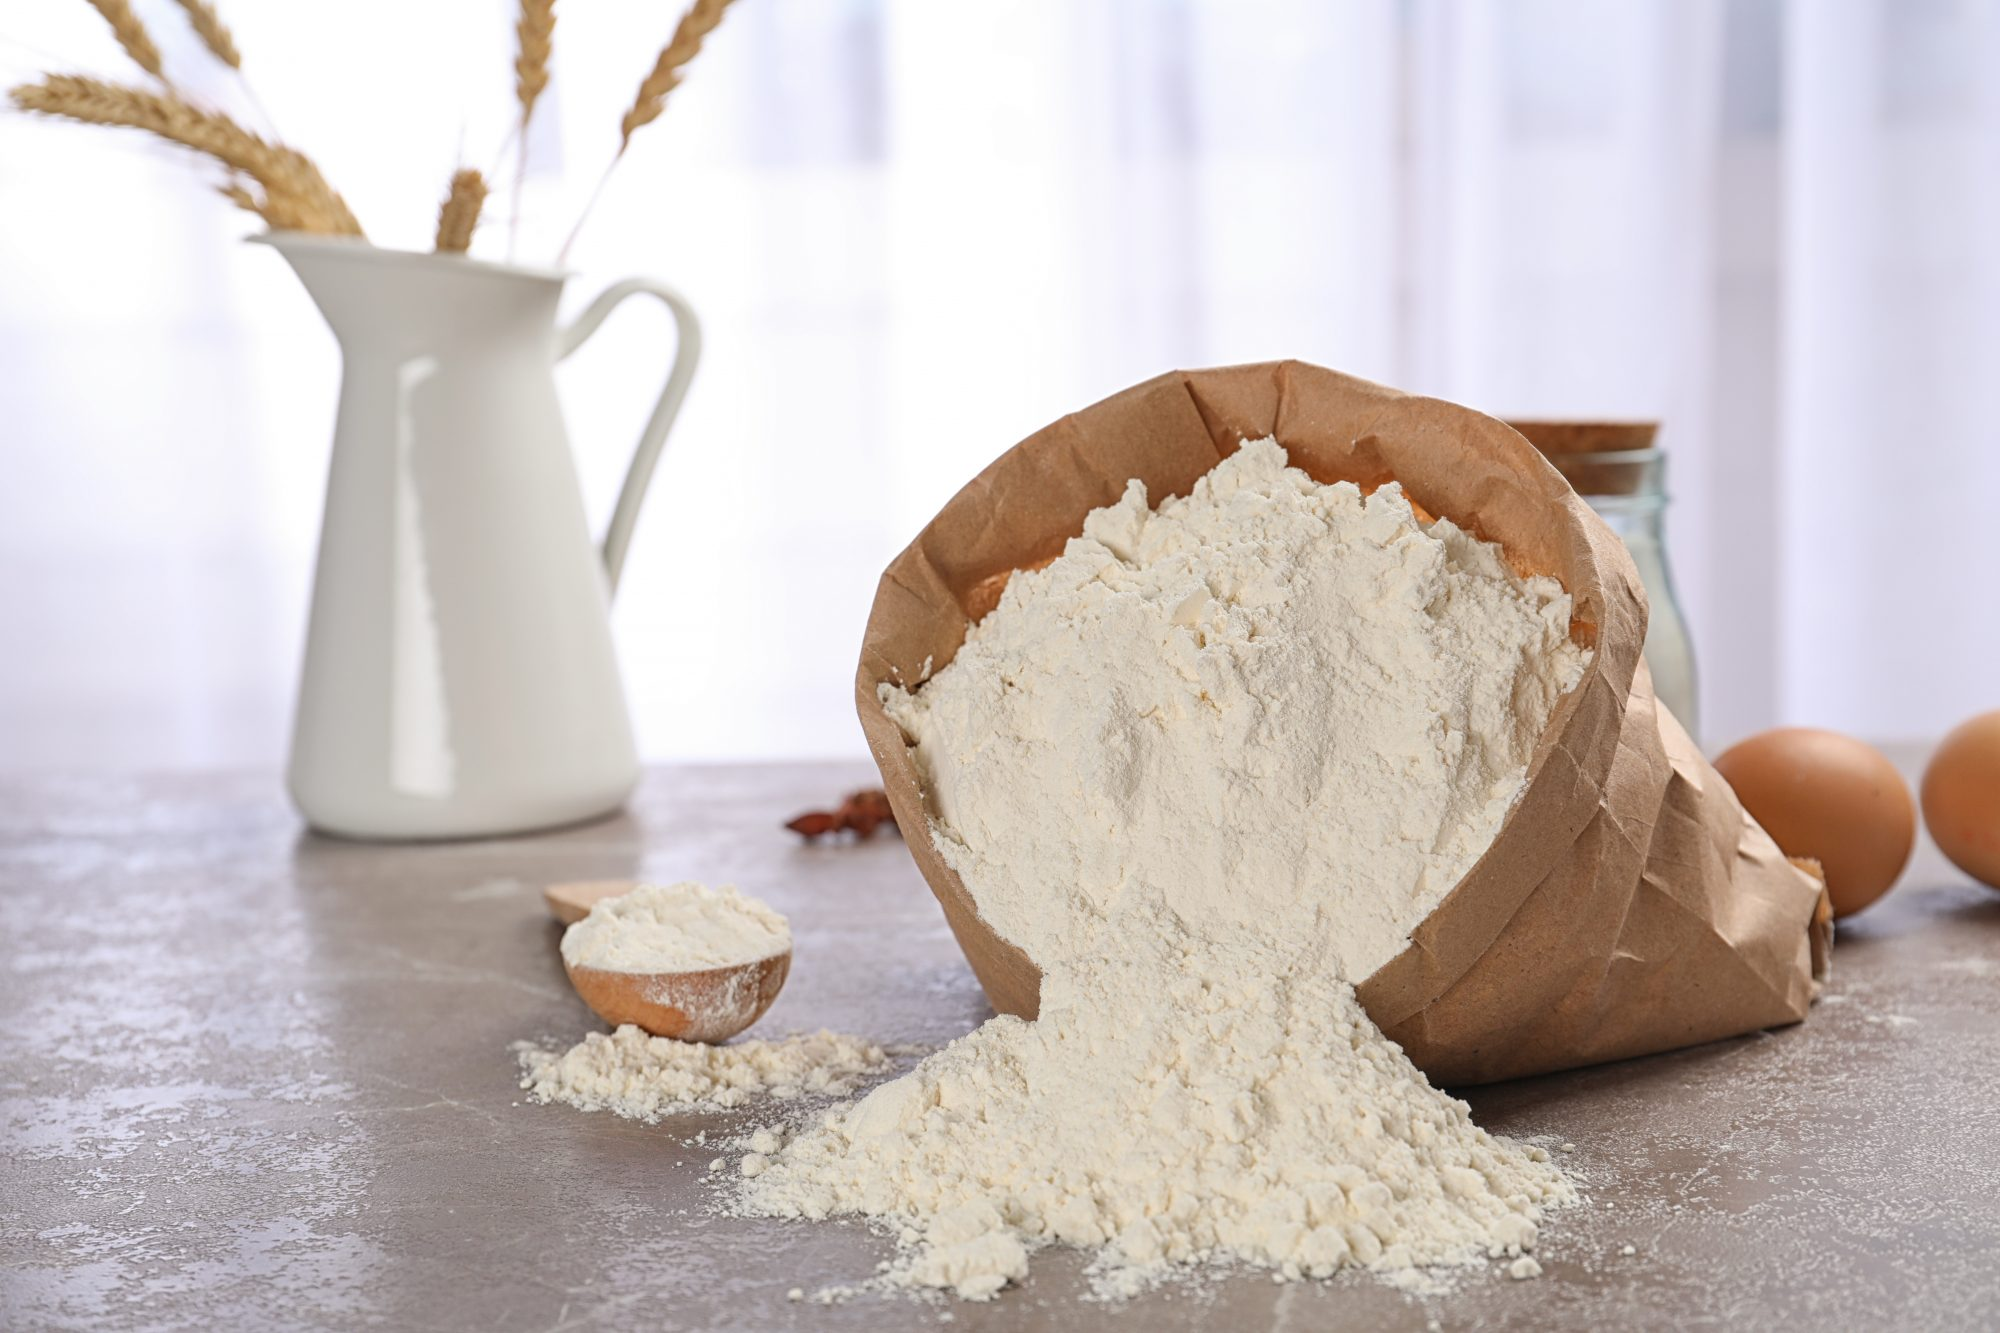 Another Flour Brand Has Been Recalled for Possible E. coli Contamination